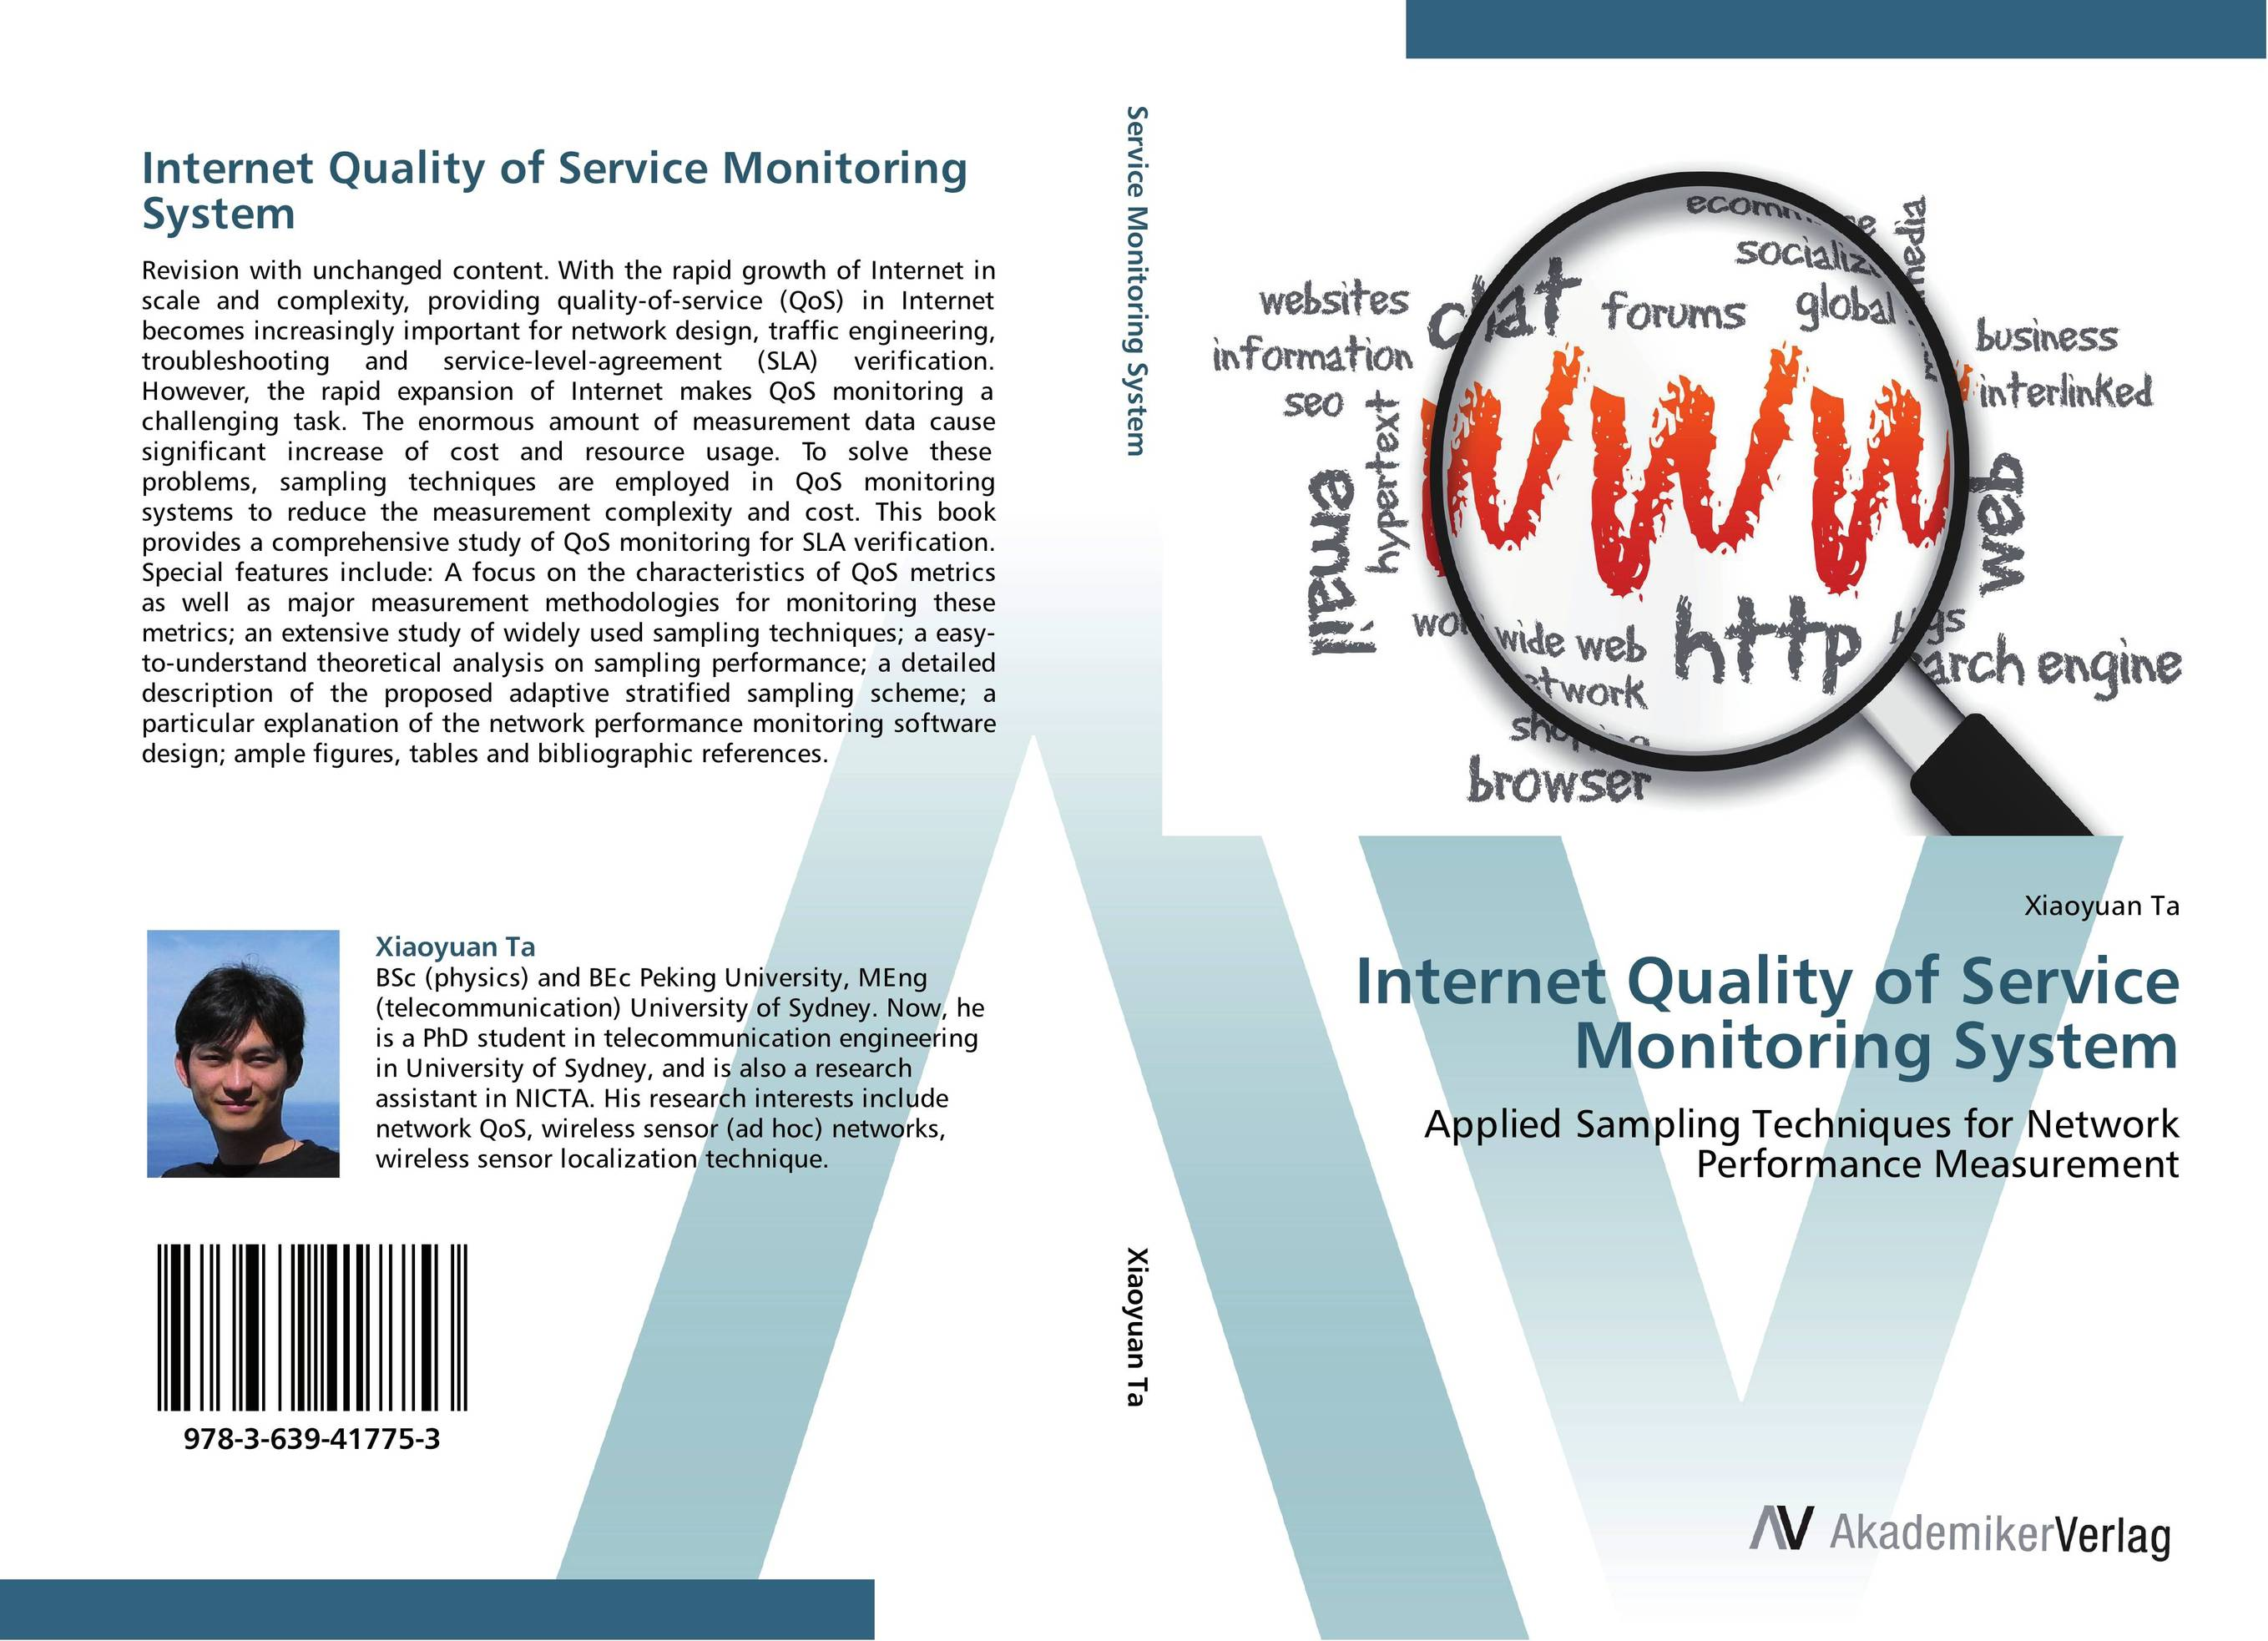 Internet Quality of Service Monitoring System tie dye trim kangaroo pocket dress